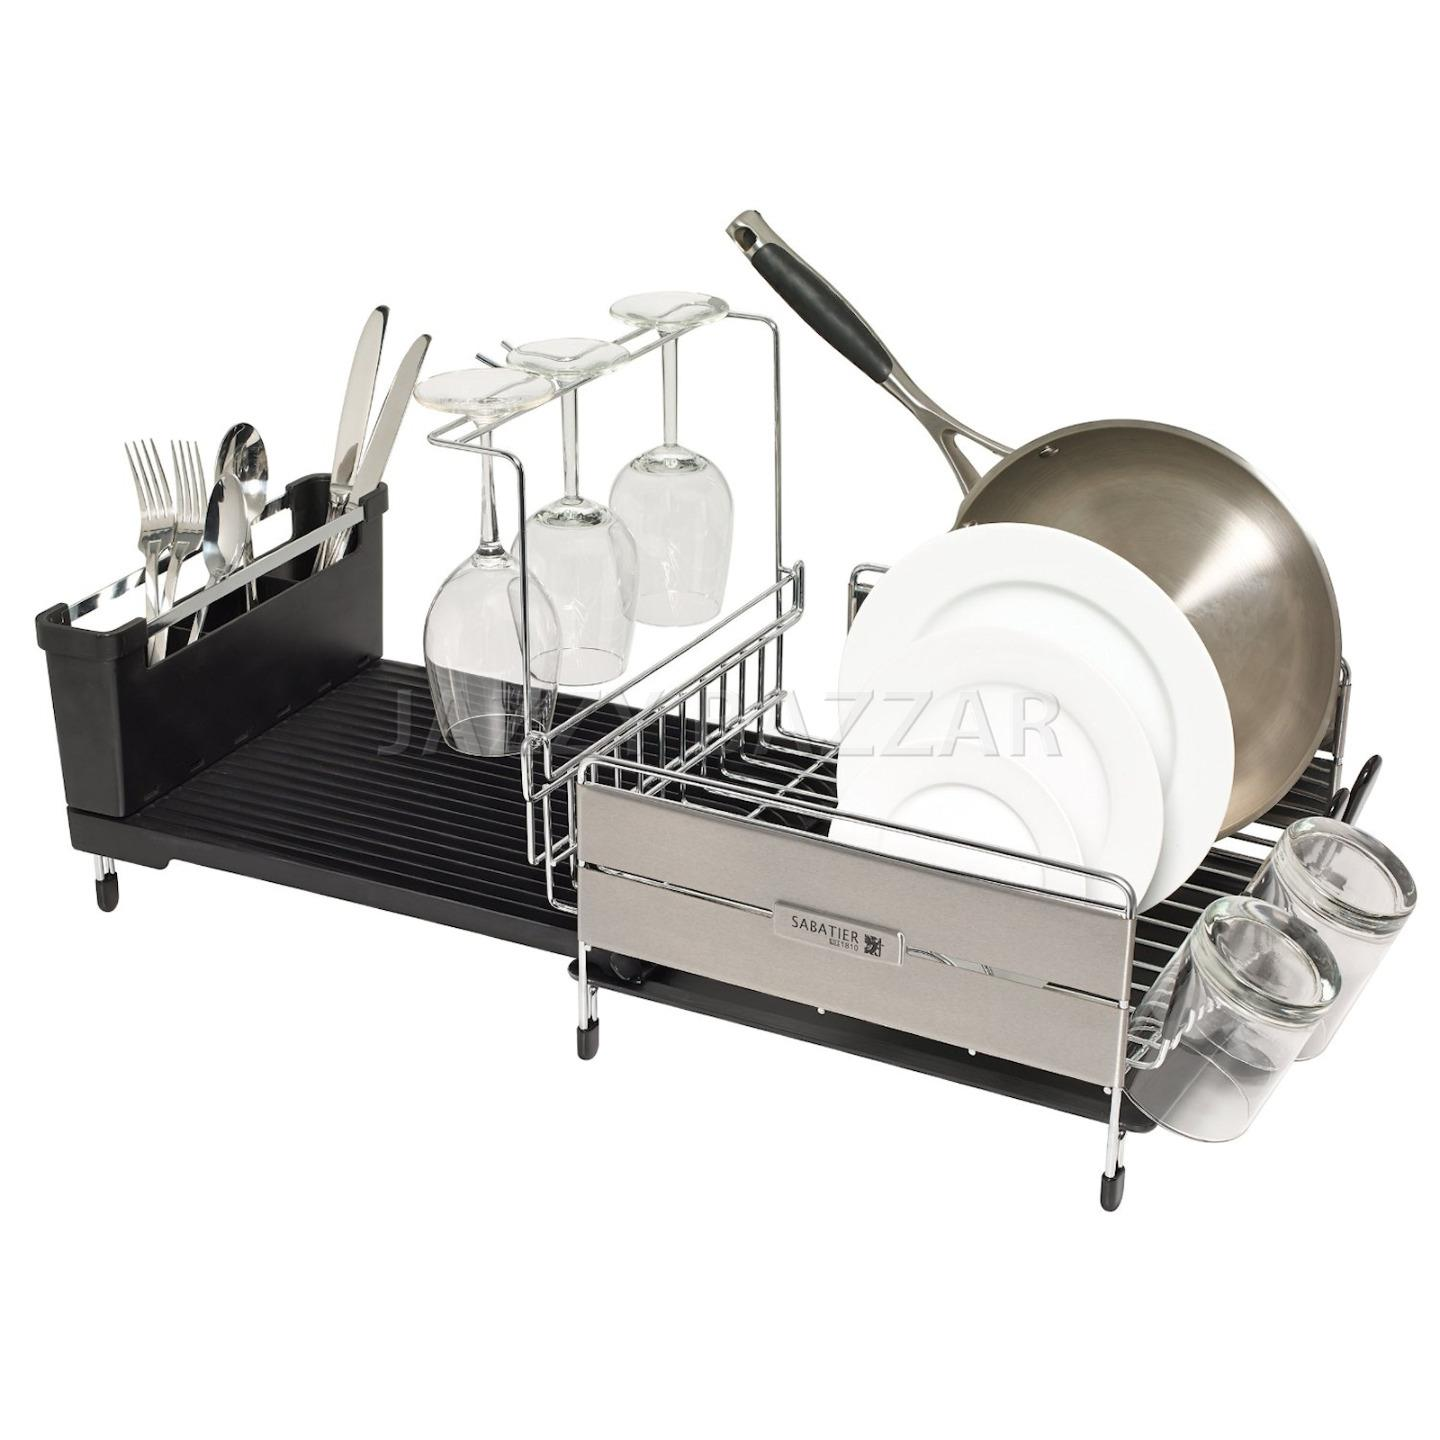 Sabatier Expandable Stainless Steel Dish Drying Rack